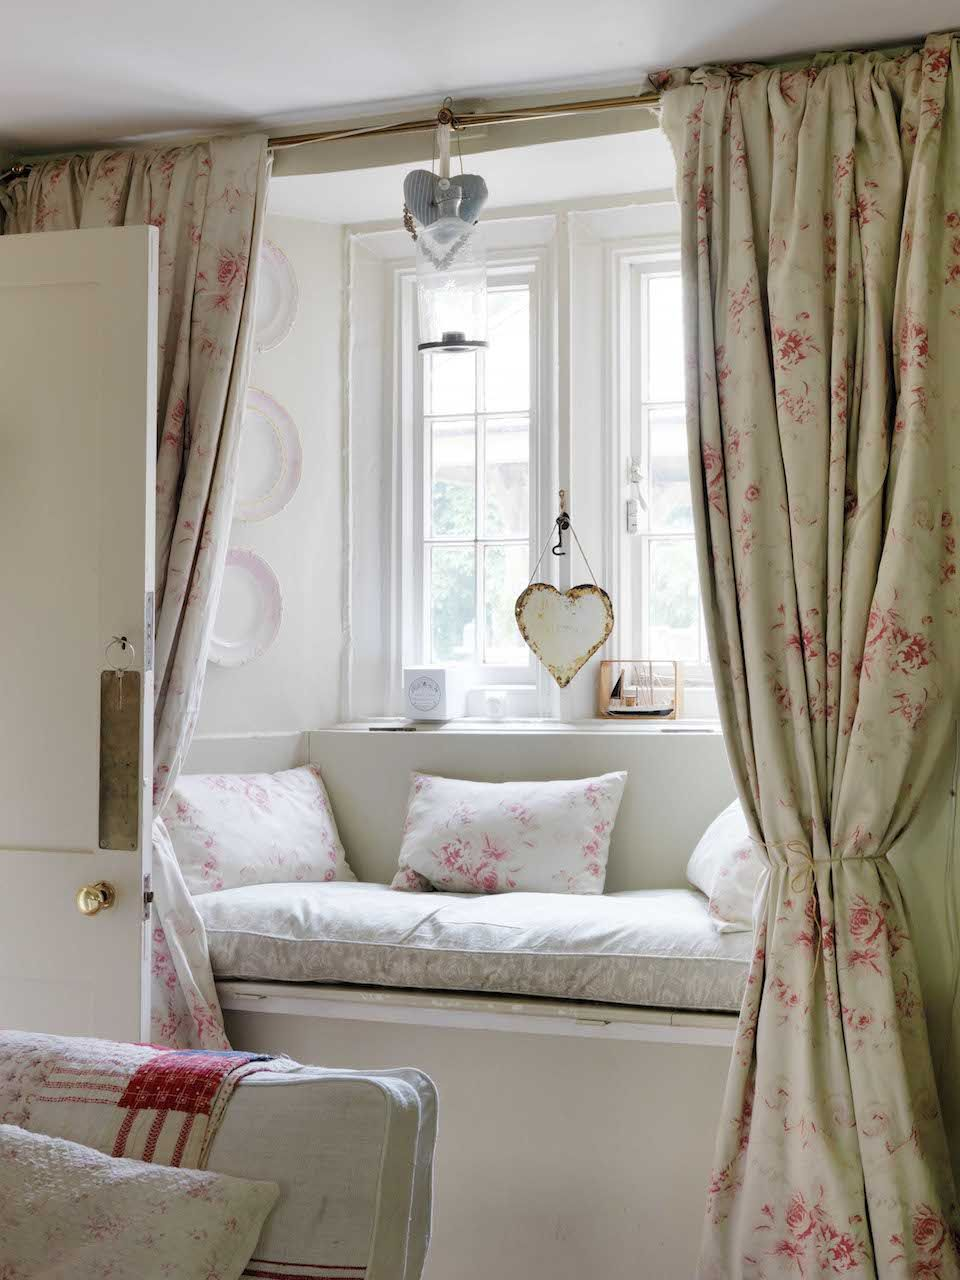 I so love window seats, we have a small bay window in our